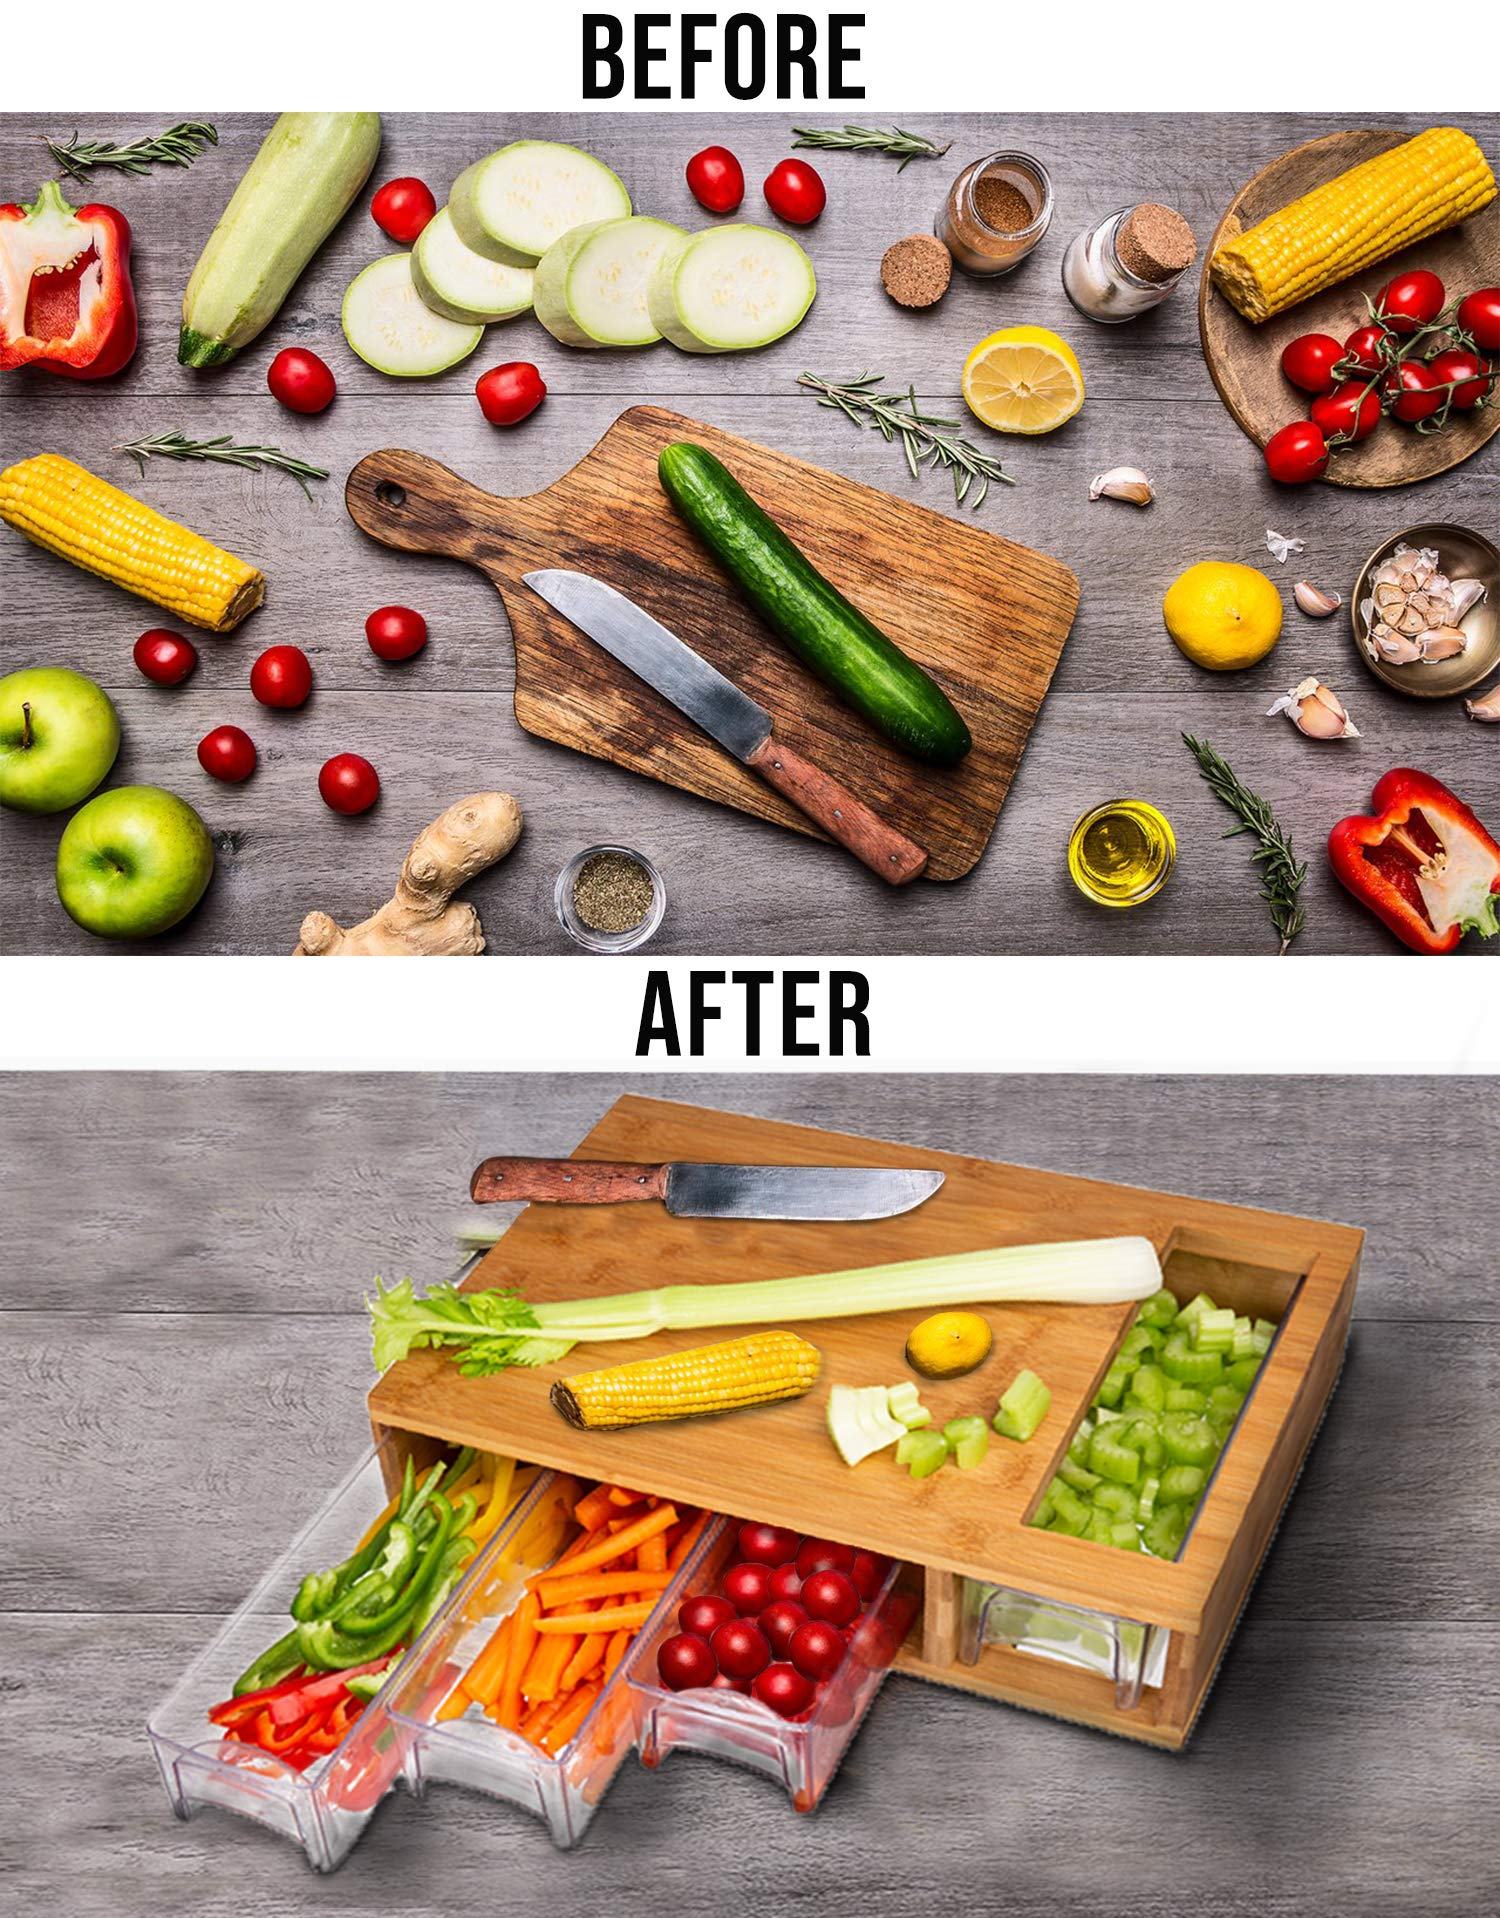 Large Bamboo Cutting Board with Trays/Draws - Wood Butcher Block with 4 Drawers & Opening For Meat, Fruits, Veggies, Bread, Cheese – Naturally Antimicrobial – Make Meal Prep Easy by Simpli Better (Image #2)